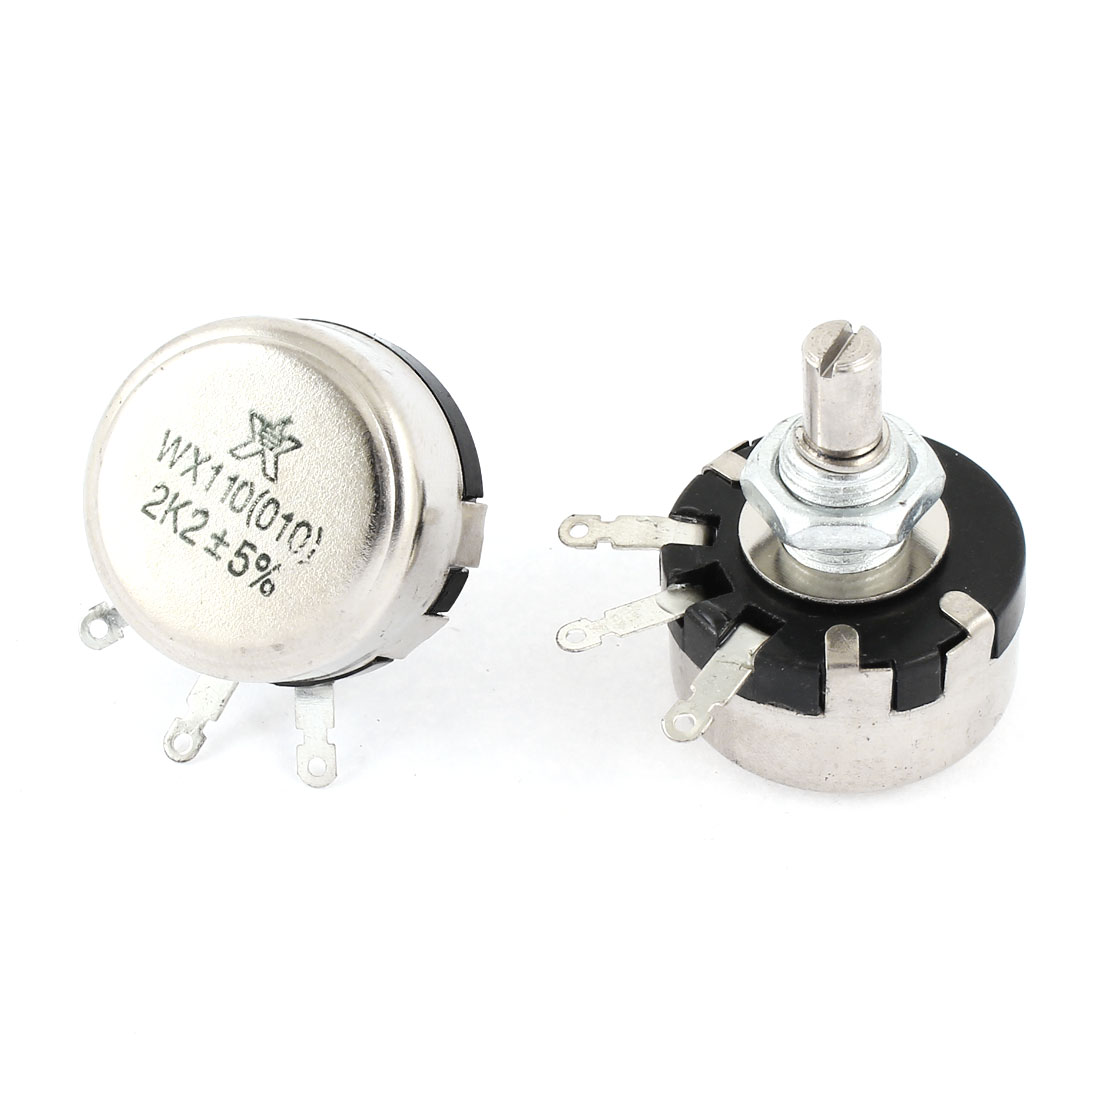 2 Pcs Single Turn Rotary Taper Carbon Potentiometer 2W 2.2K Ohm WTH110 010